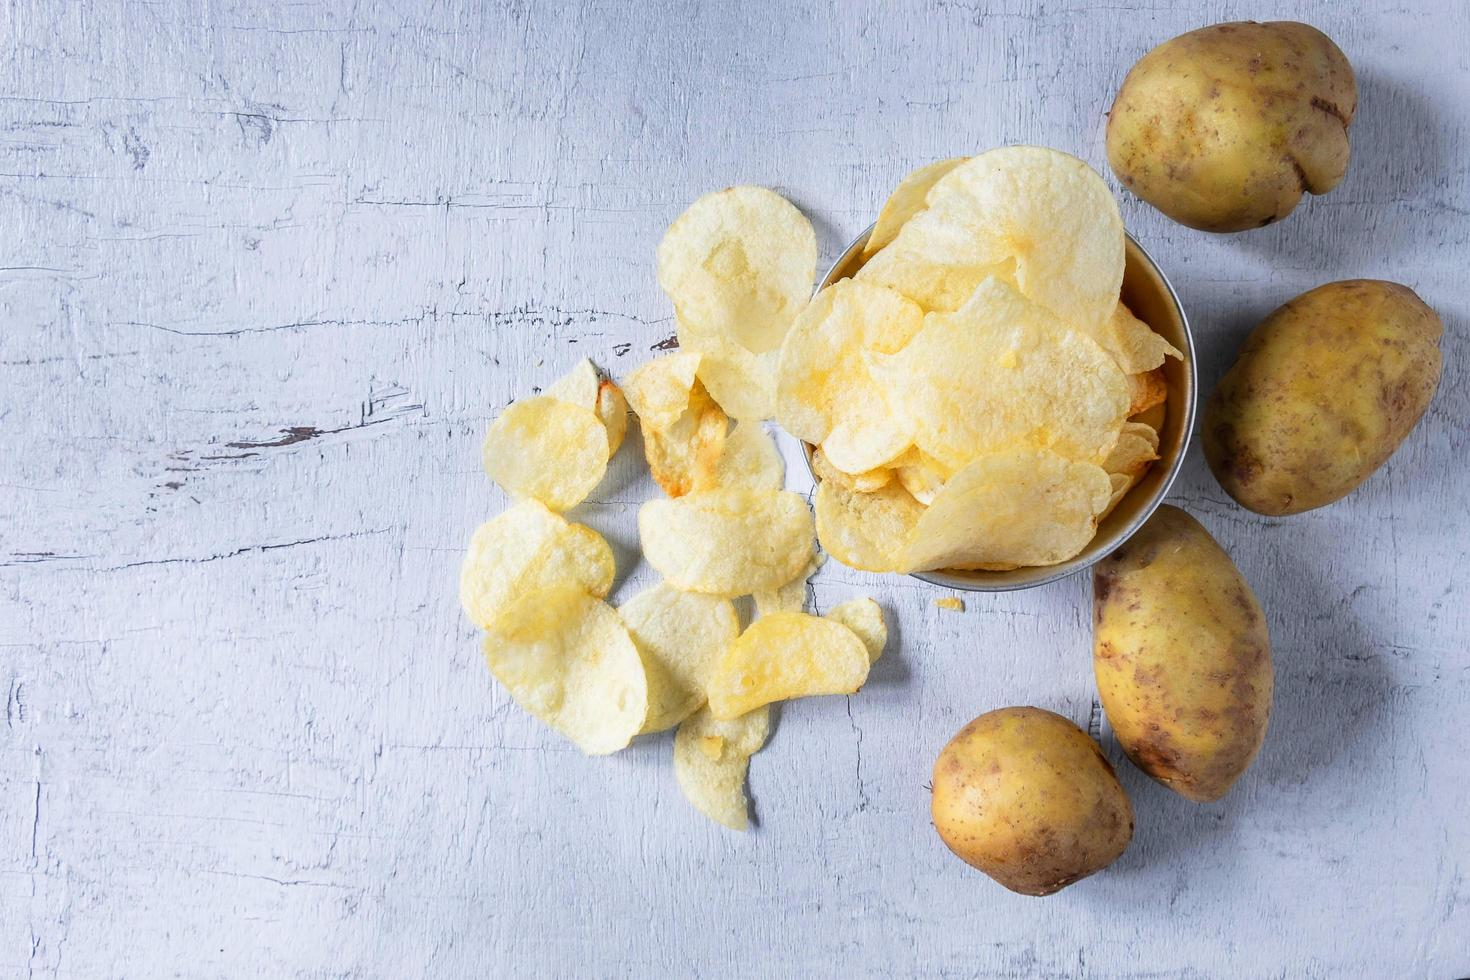 Fried potato chips and raw potato in a bowl photo